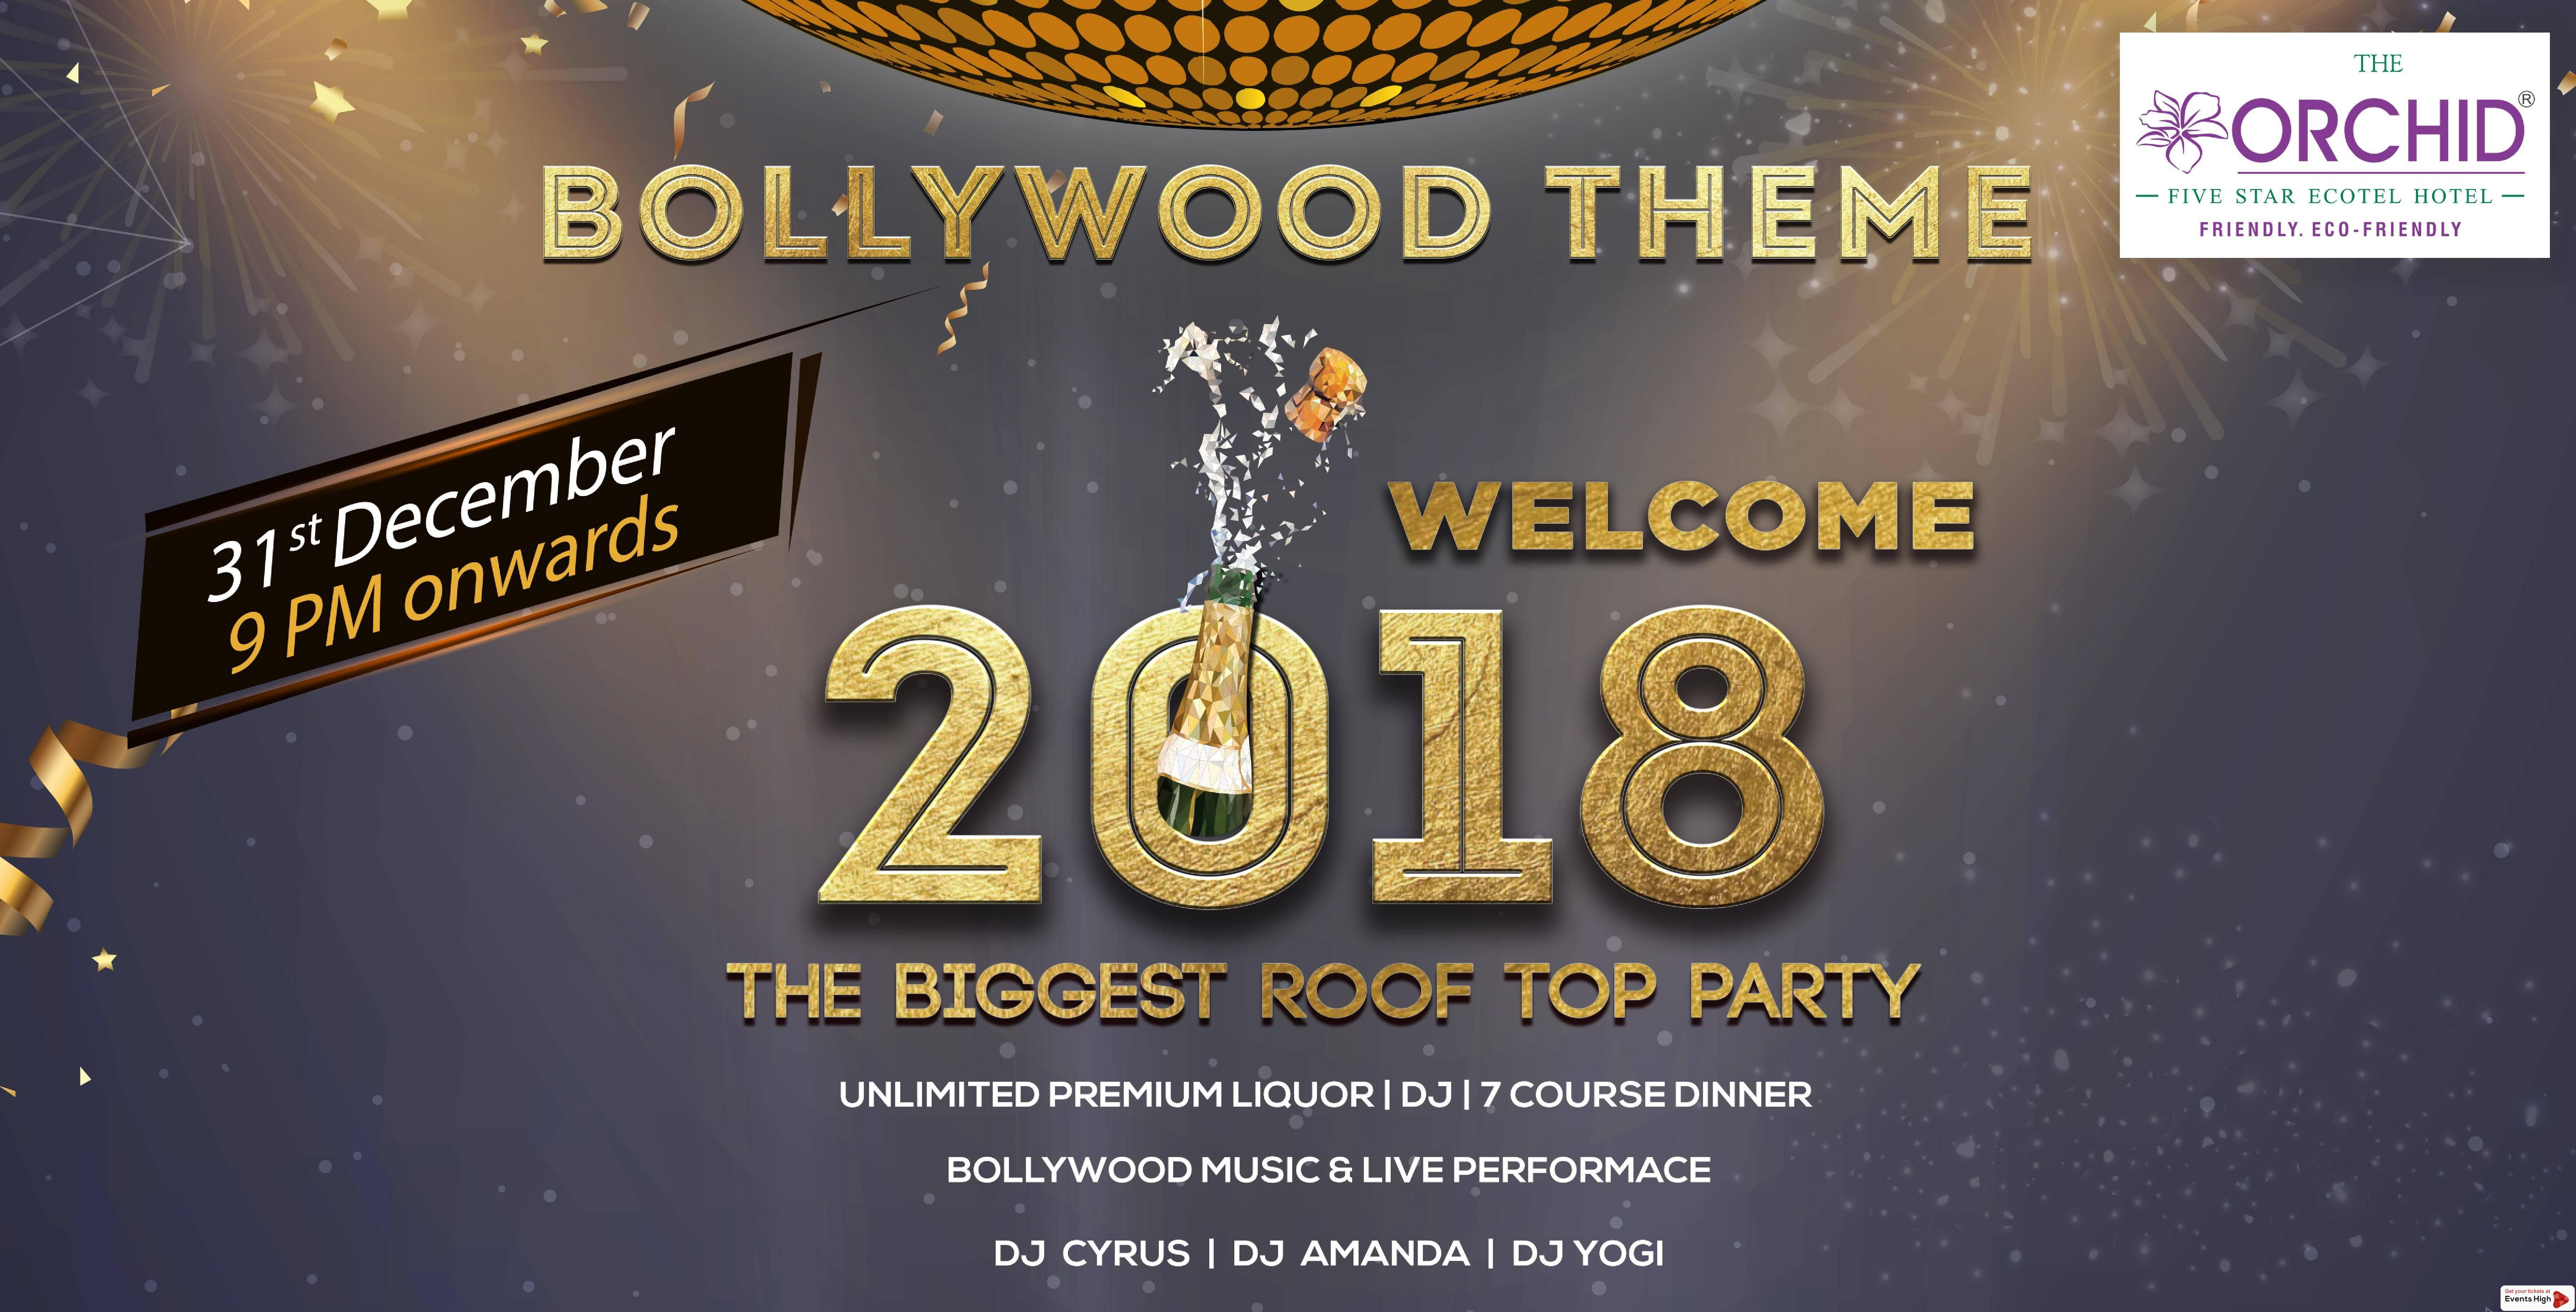 Orchid New Year The Biggest Rooftop Bollywood Theme Nye 2018 At Nehru Road Mumbai Events High Bollywood Theme New Years Party Newyear